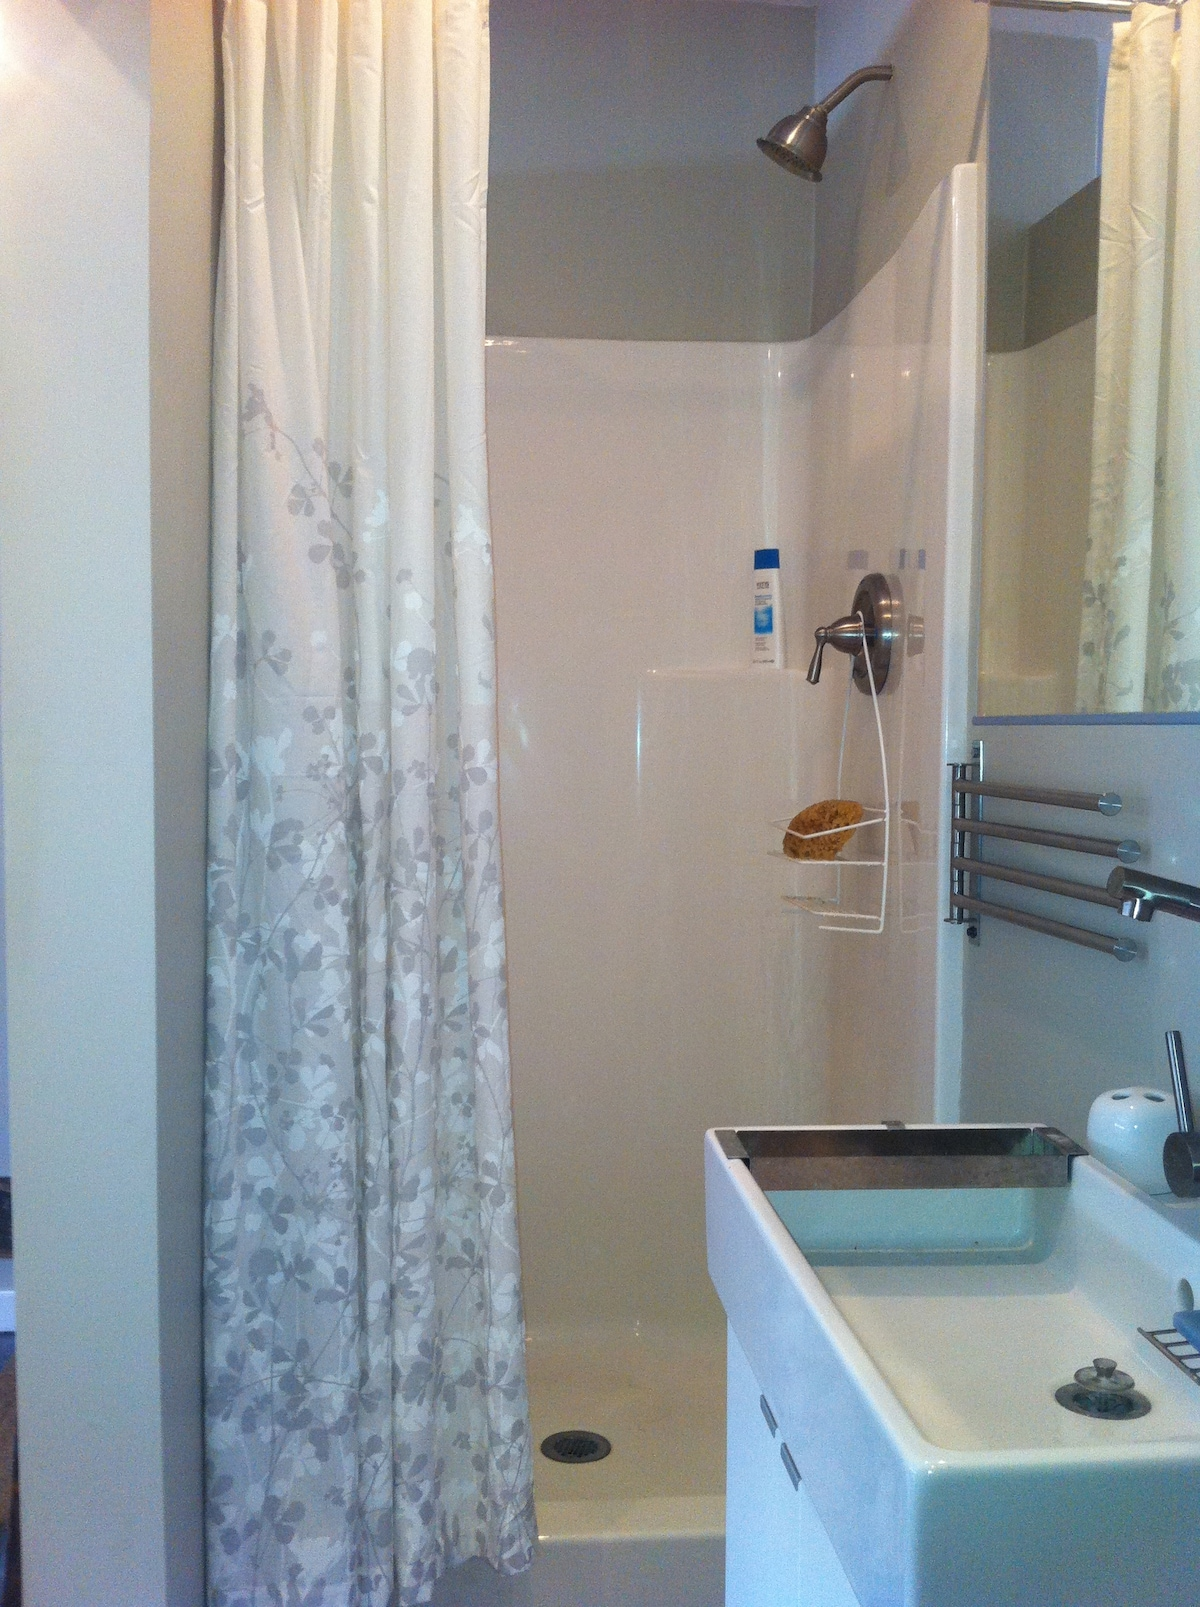 shower no bath tub sorry but there is one in the main bathroom you can use for babies or just relaxing